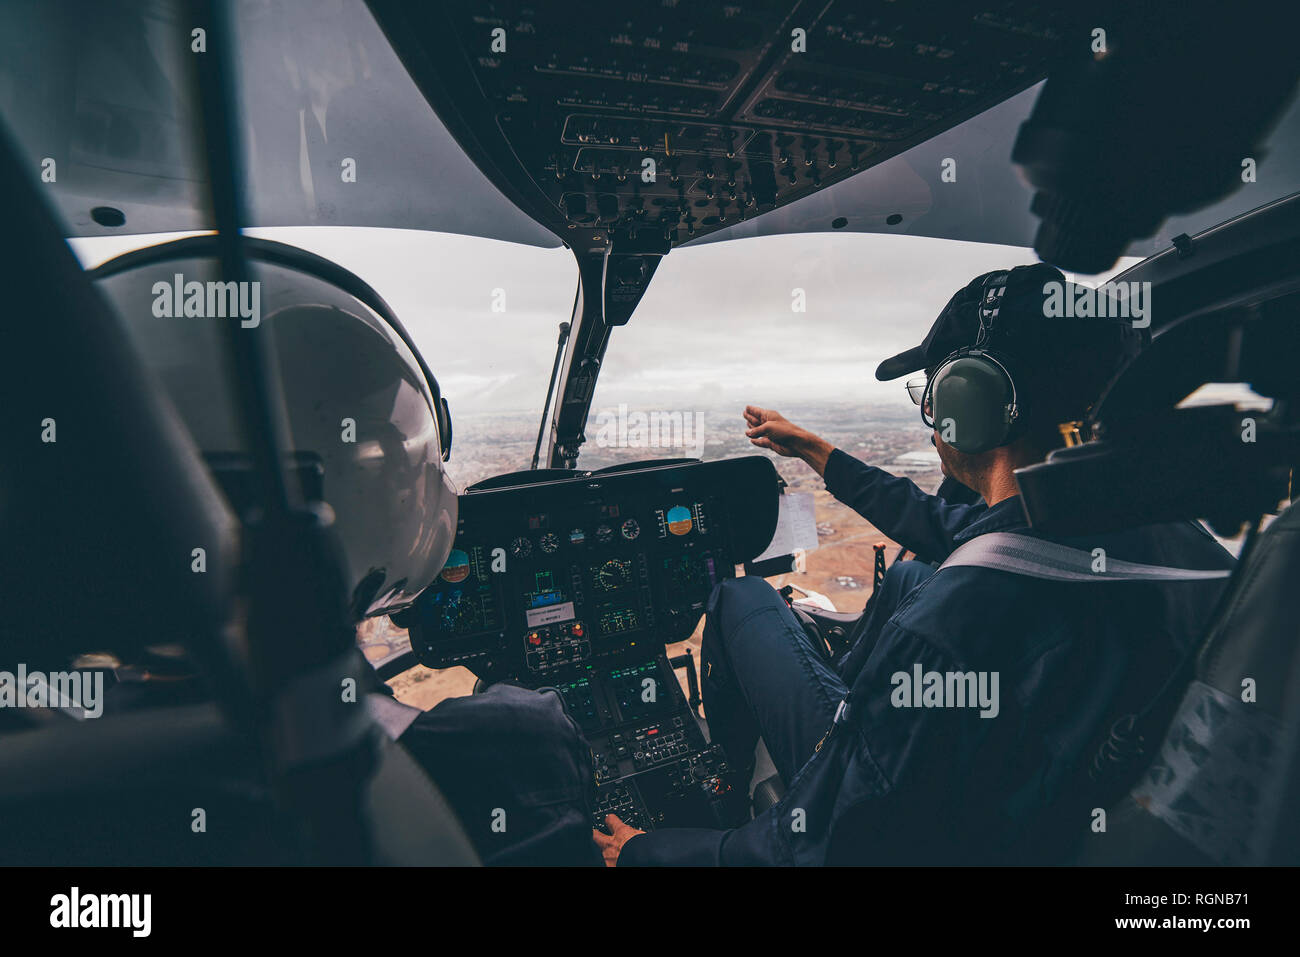 Police pilot during the helicopter flight - Stock Image